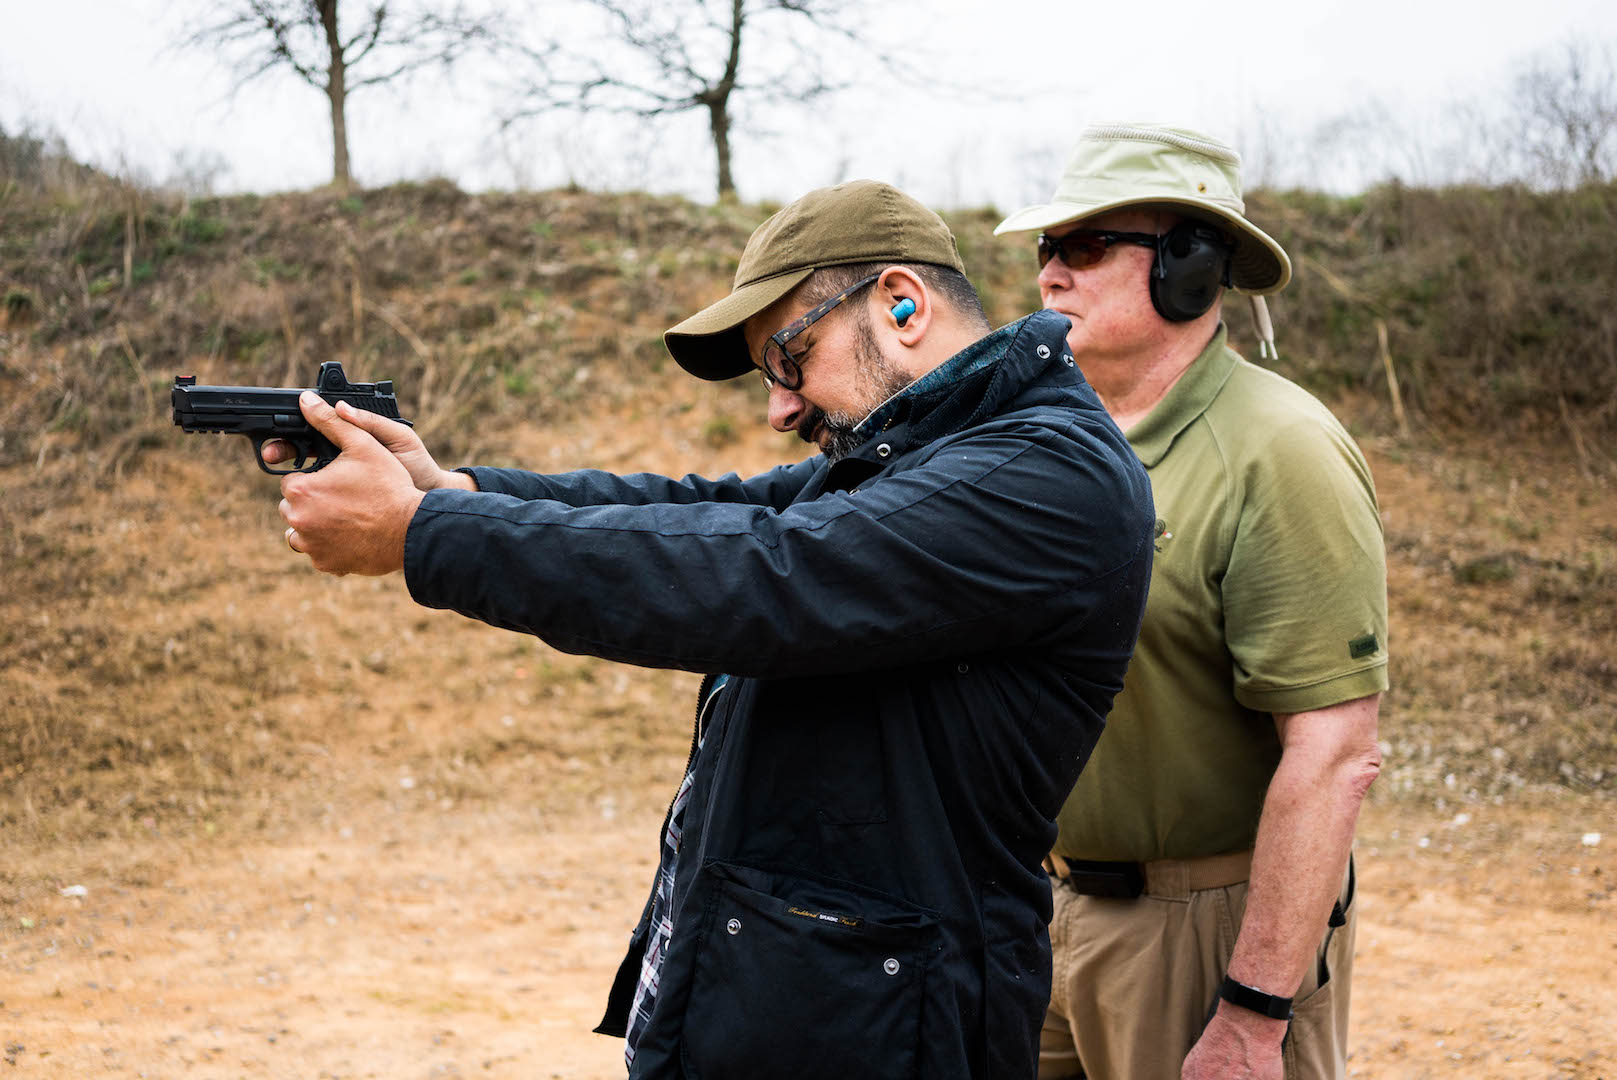 news.vice.com - How the firearm industry is winning the fight against gun control